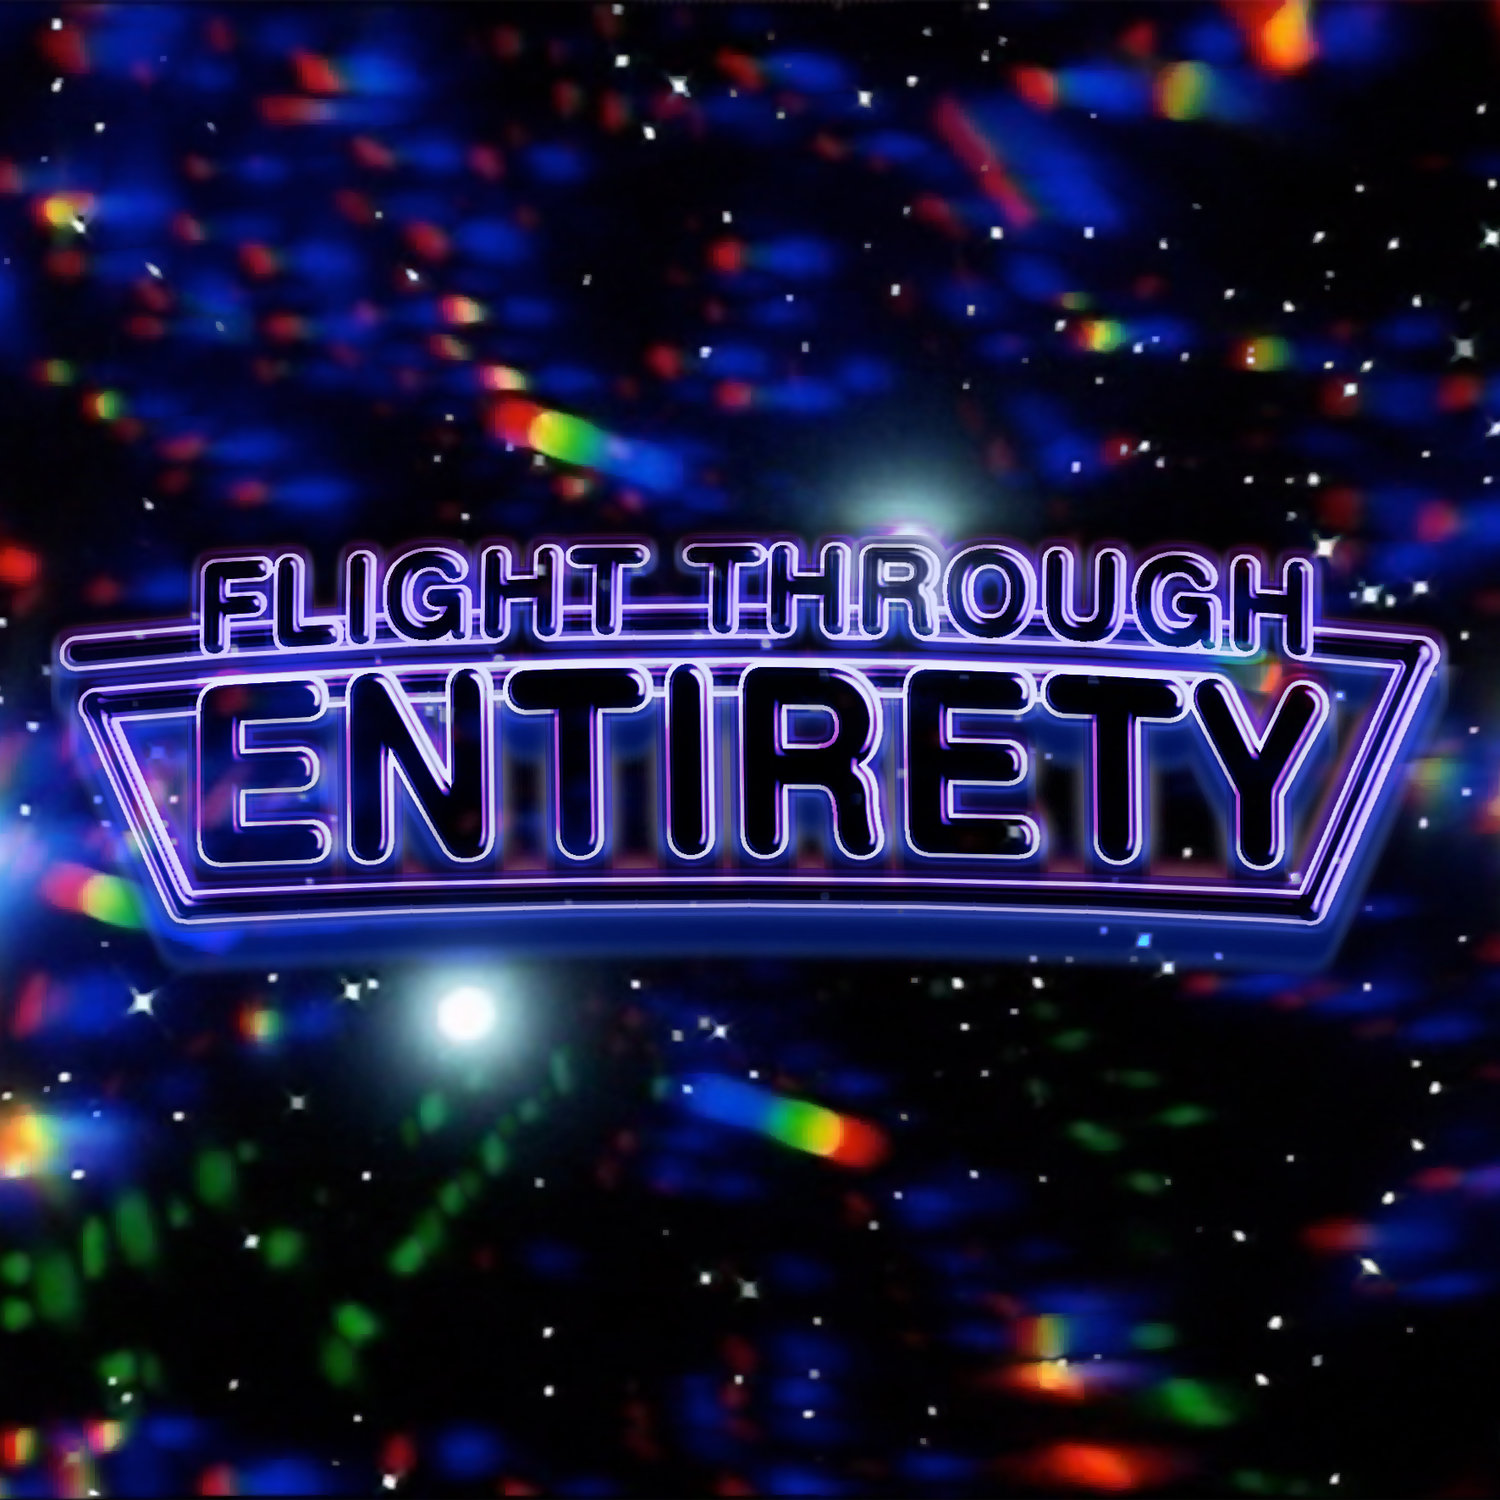 Flight Through Entirety: A Doctor Who Podcast